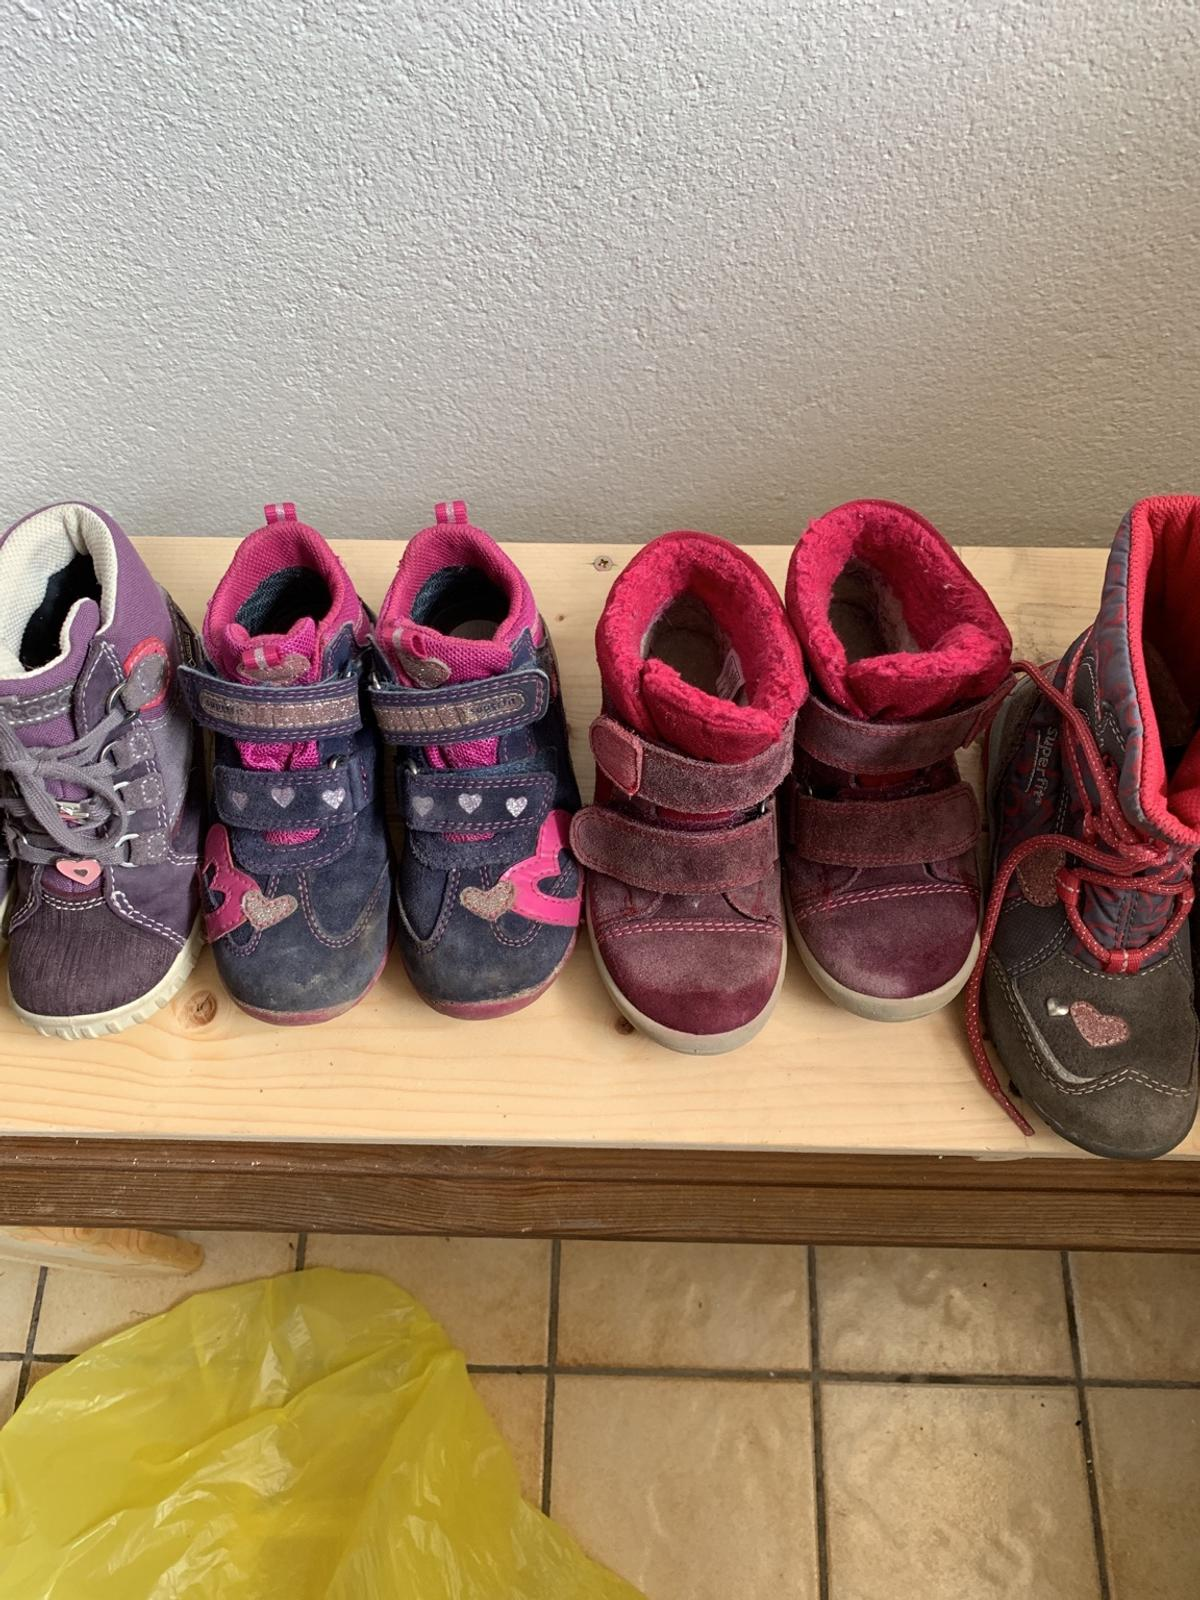 competitive price e11a2 0b56a Winter Schuhe gr 25-27 in 6341 Ebbs for €15.00 for sale - Shpock